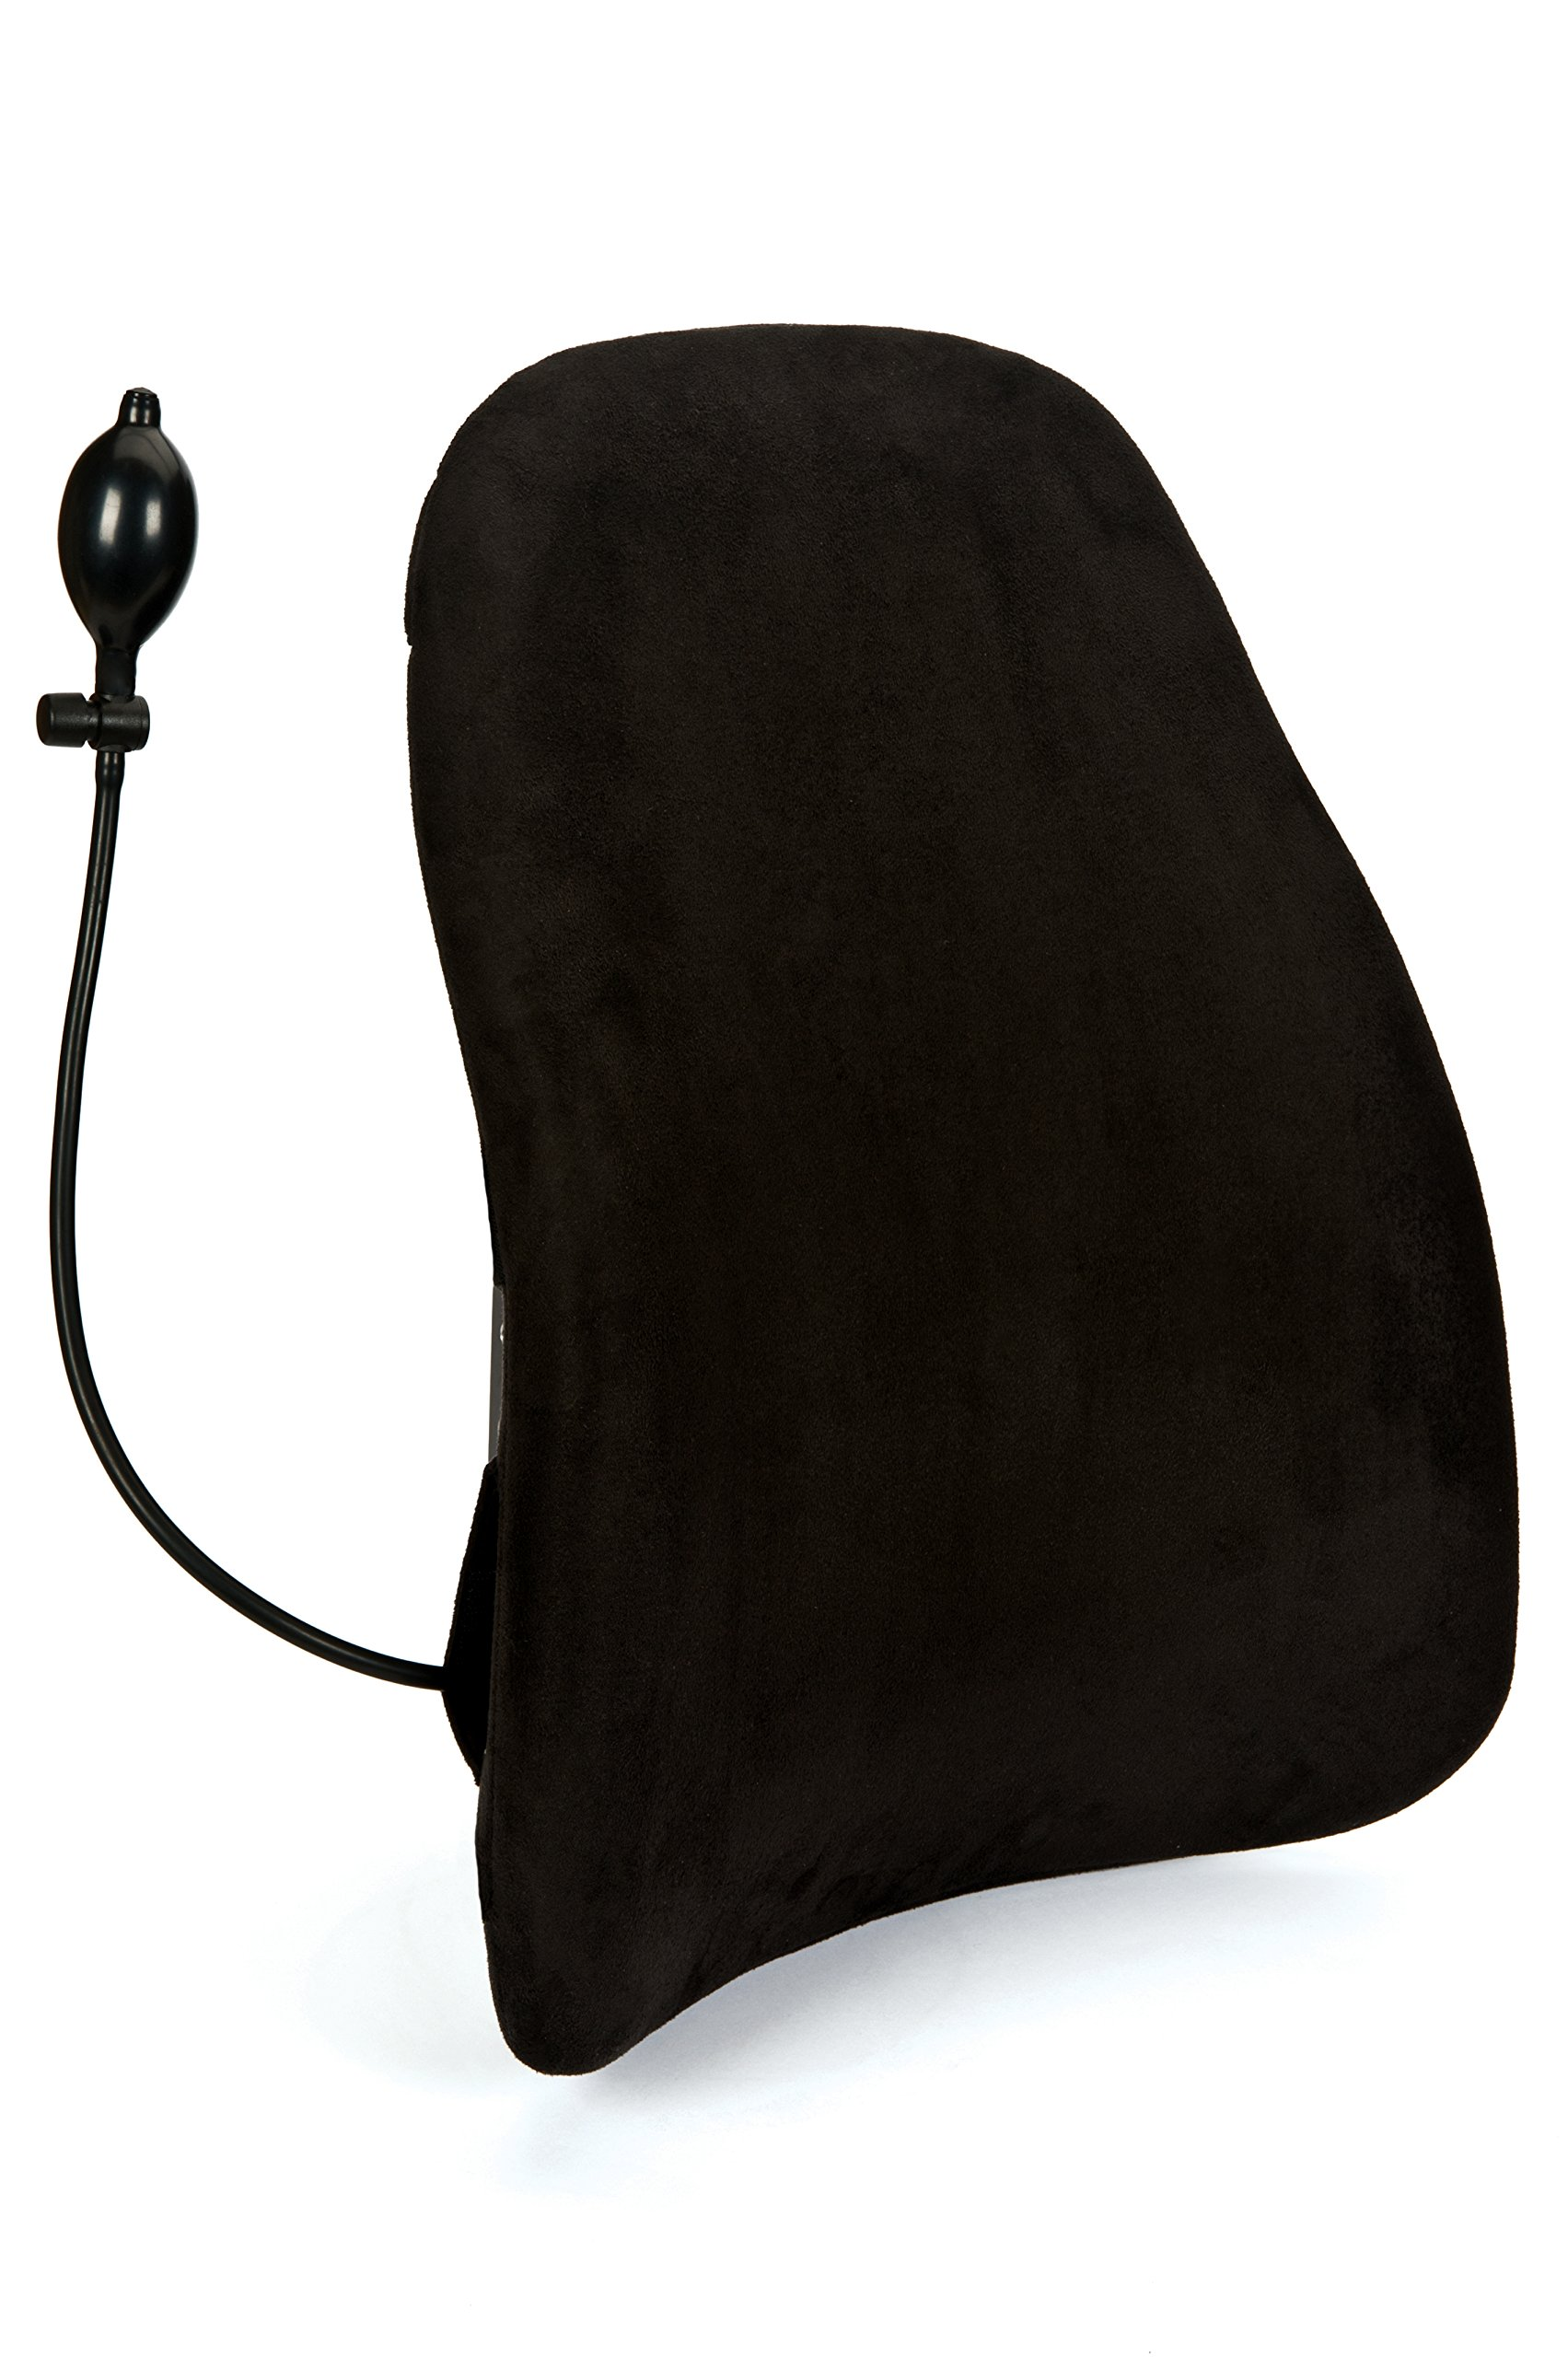 Complete Medical Obusforme Custom Air Backrest with Adjustable Lumbar Support, 4.86 Pound